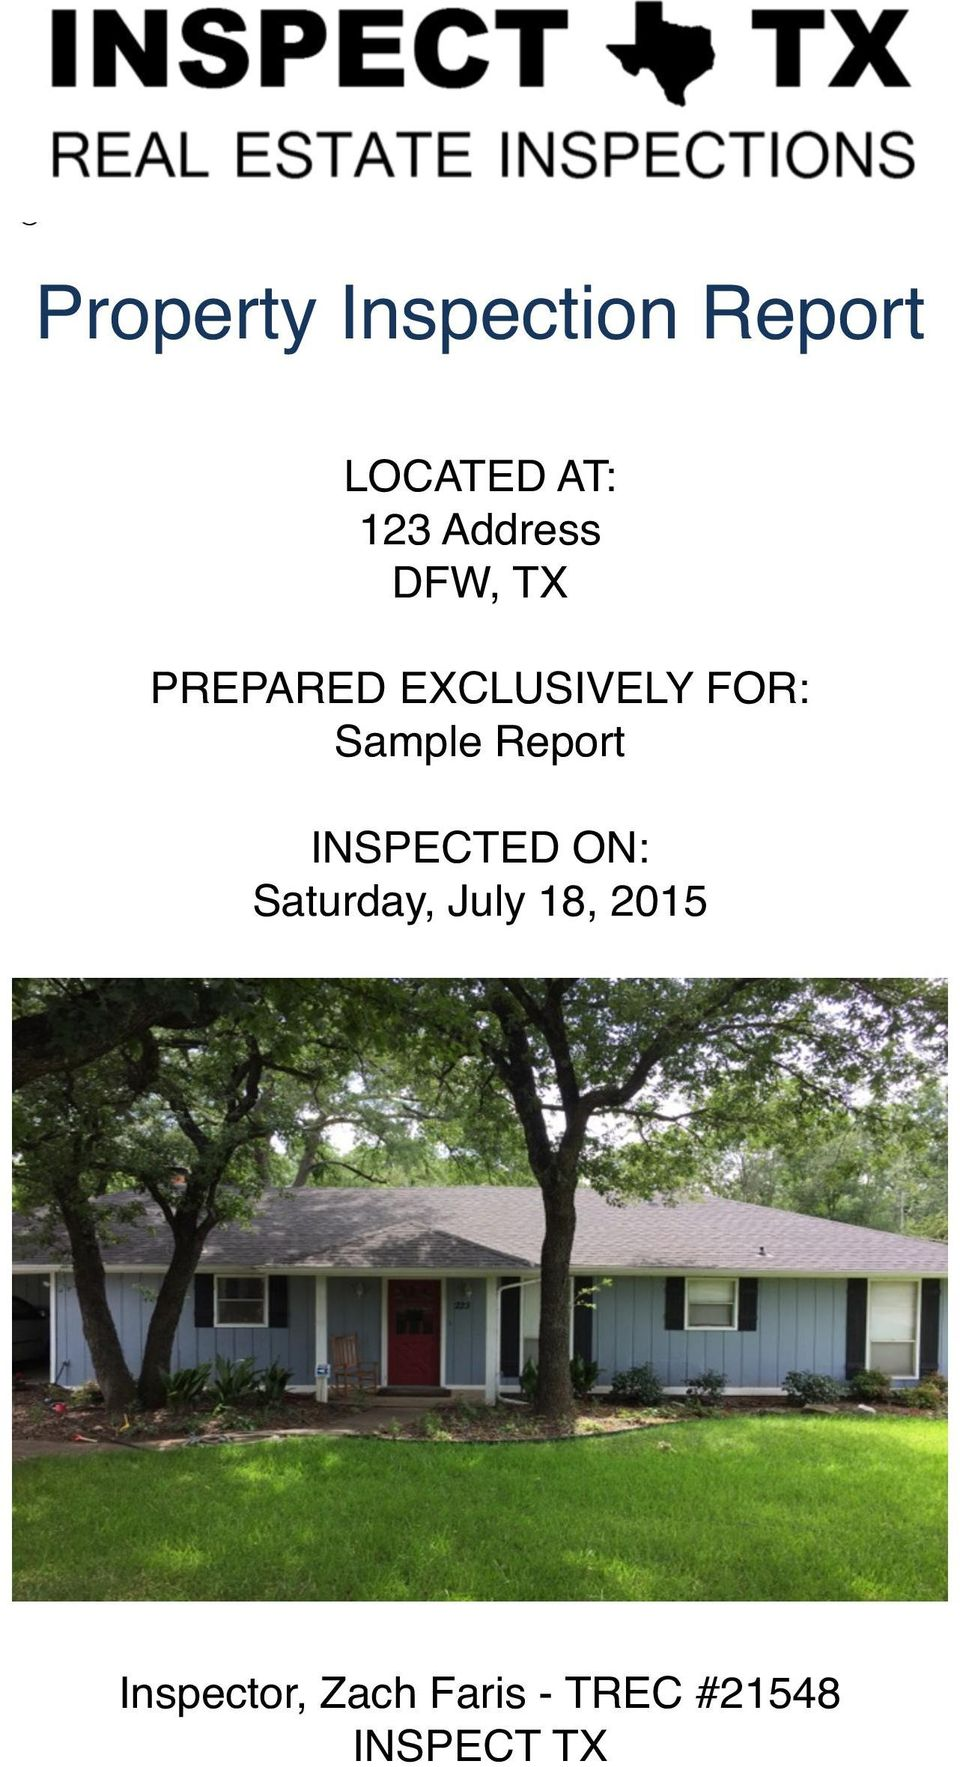 Sample Report INSPECTED ON: Saturday, July